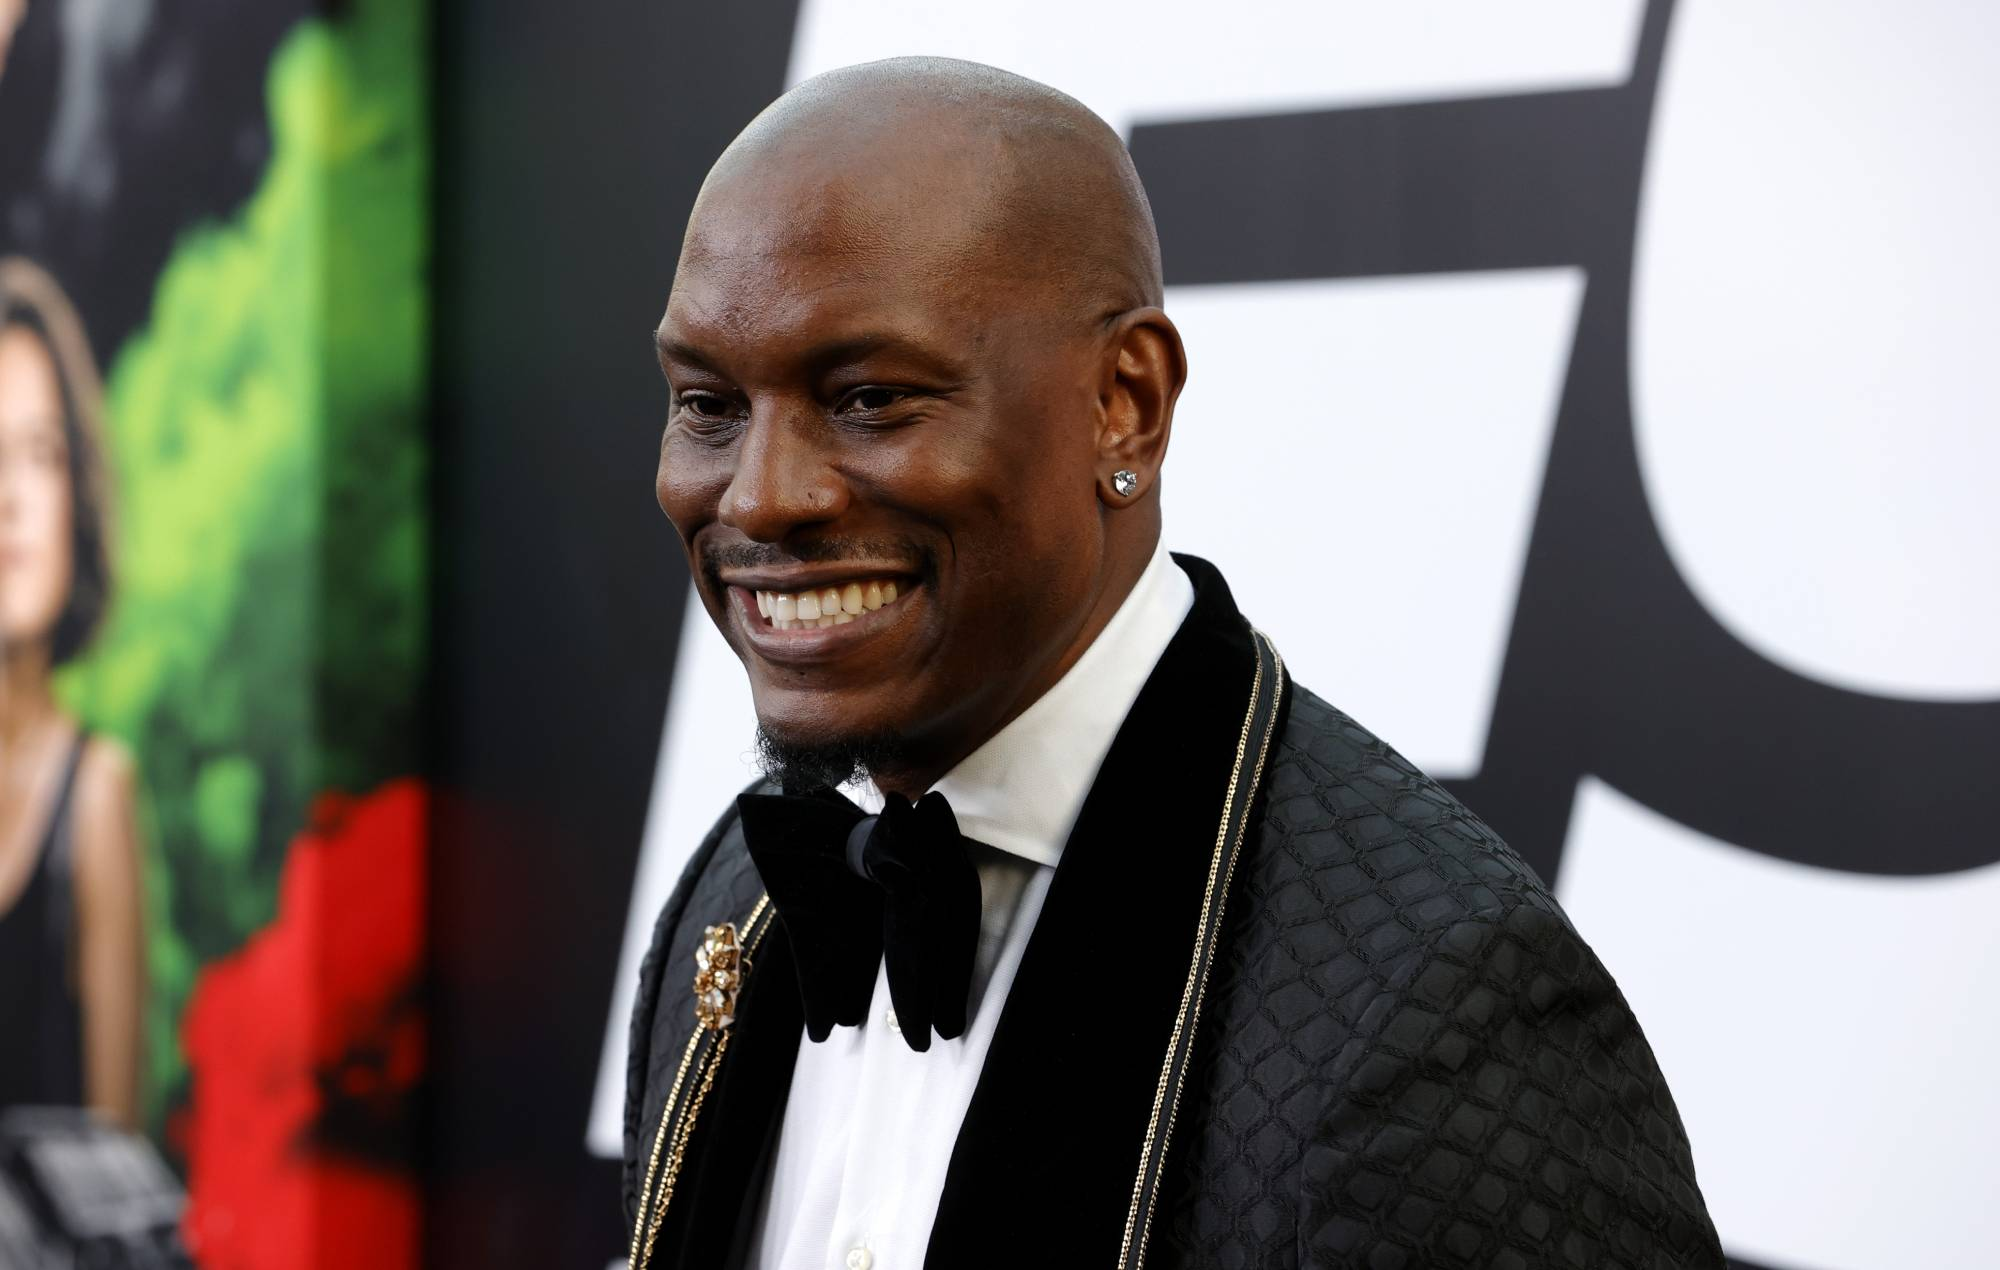 Tyrese Gibson - Fast & Furious 9